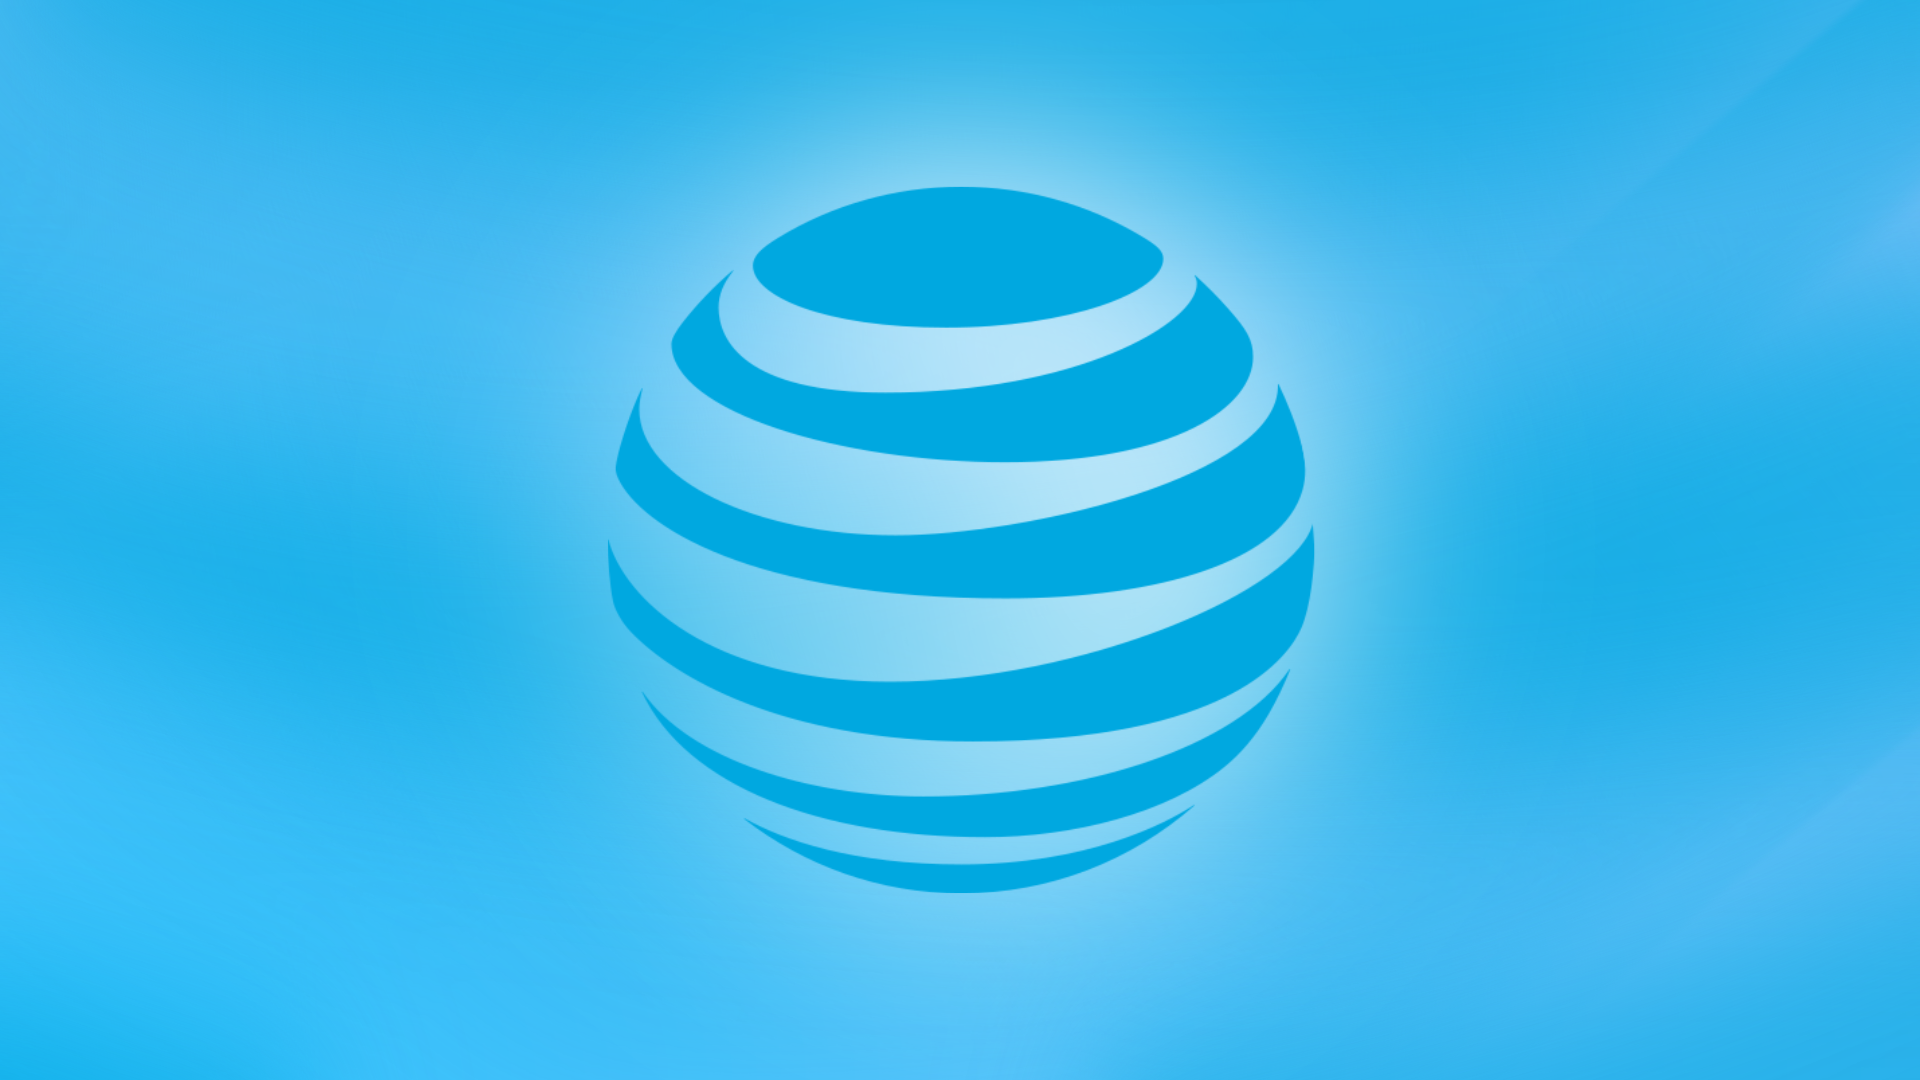 AT&T crowned fastest LTE network in PCMag's 2019 tests